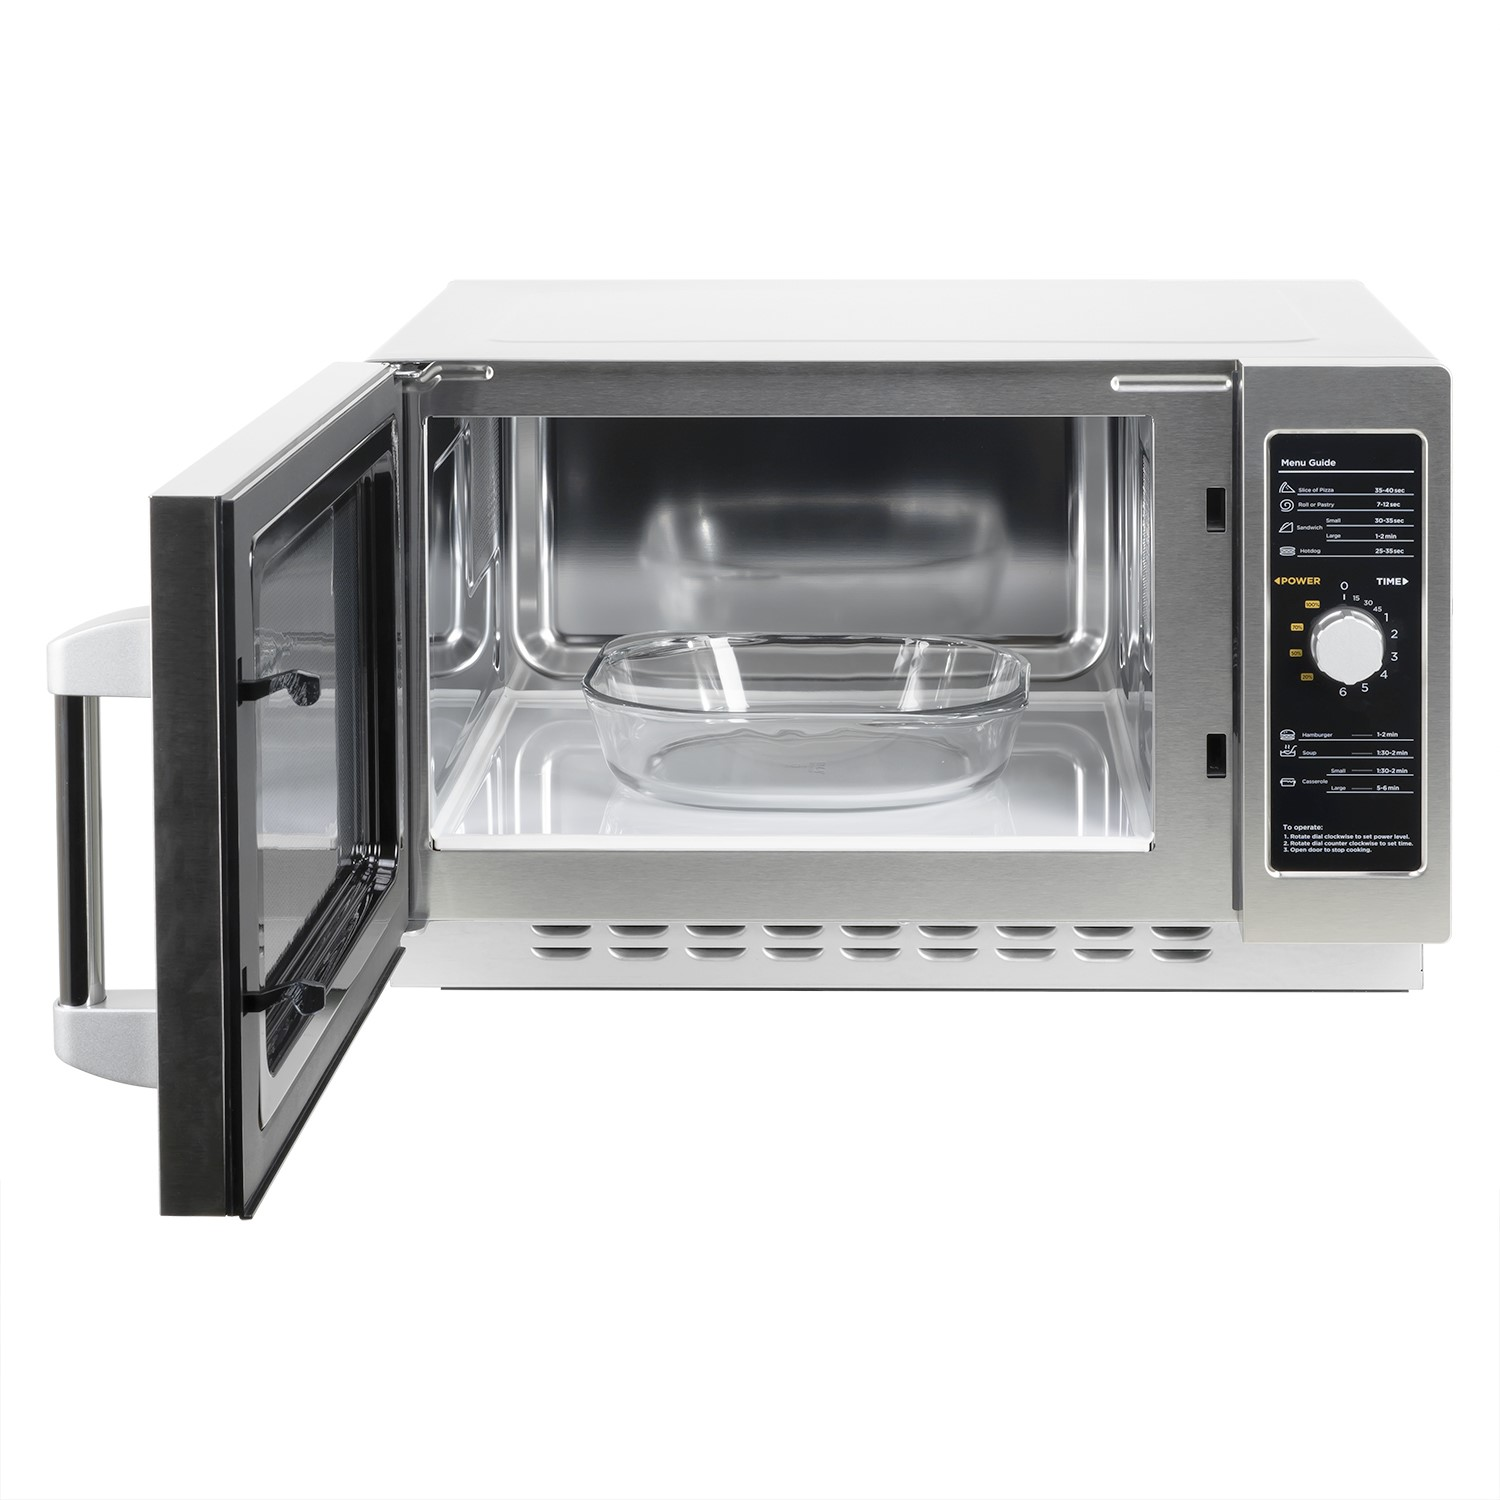 grade a1 electriq 34l 1000w flatbed commercial heavy duty freestanding microwave in stainless steel